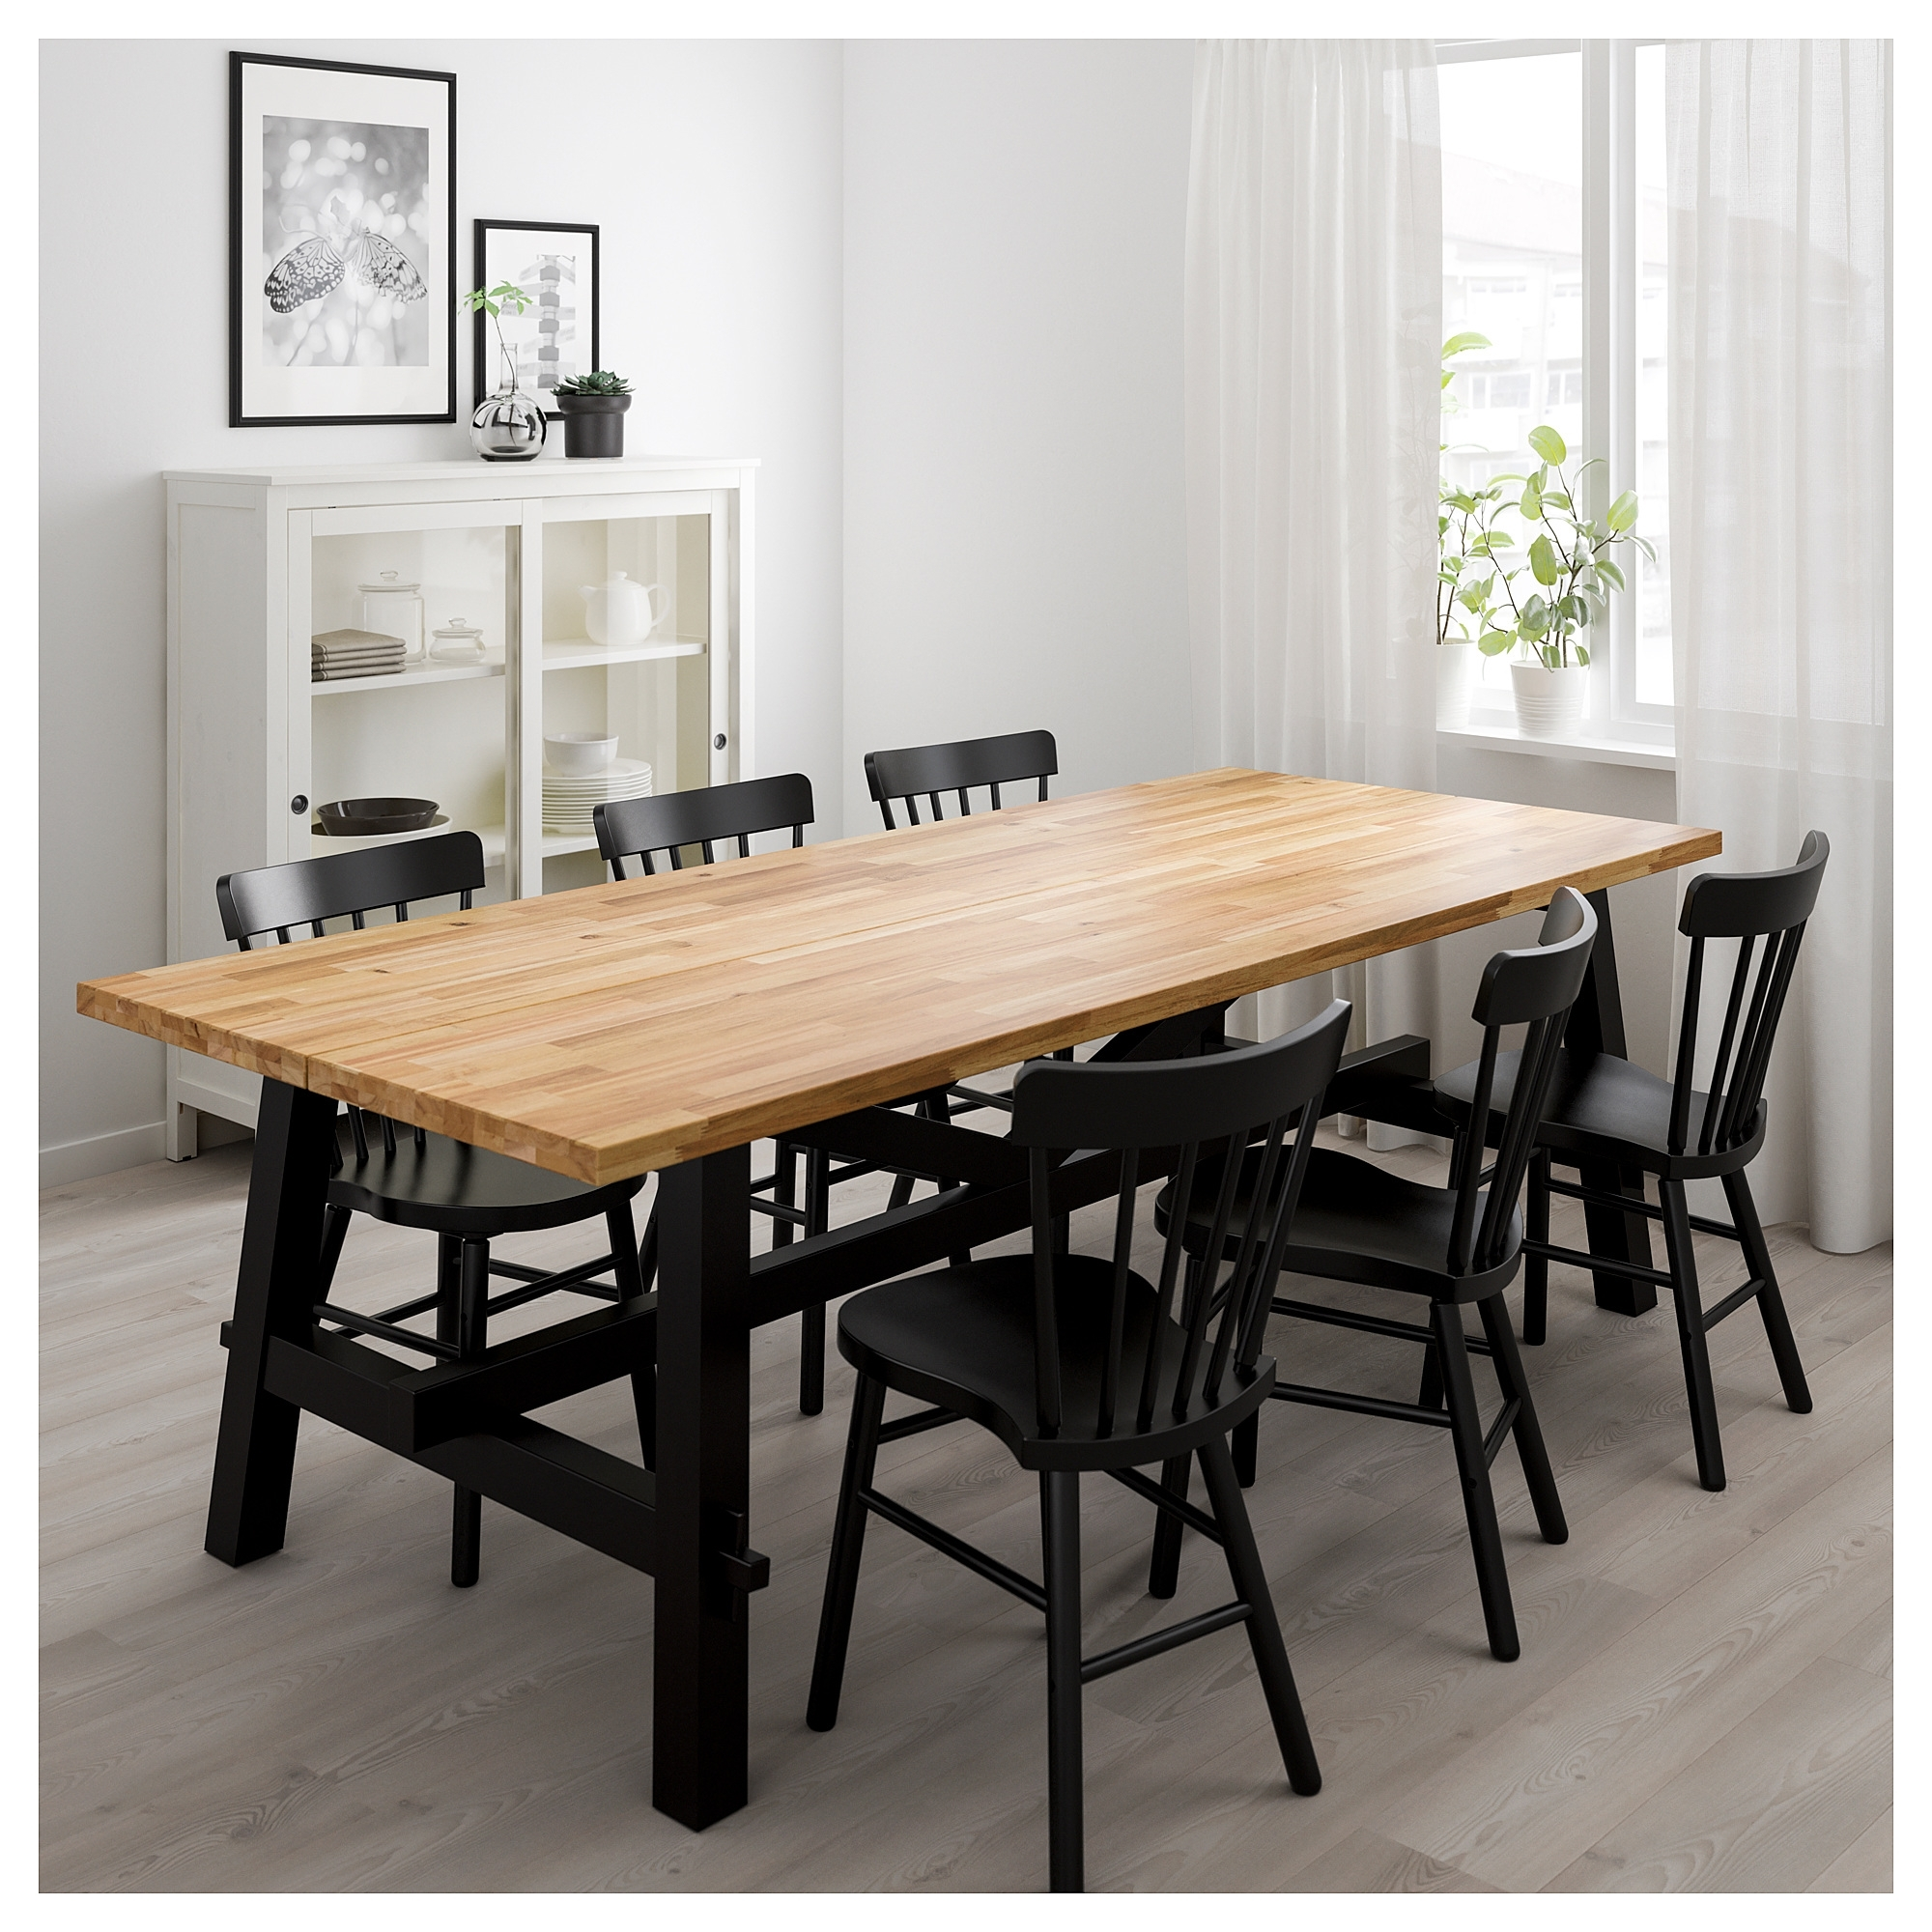 Dining Room Tables And Chairs In Favorite Ikea Lithuania – Shop For Furniture, Lighting, Home Accessories & More (View 7 of 25)